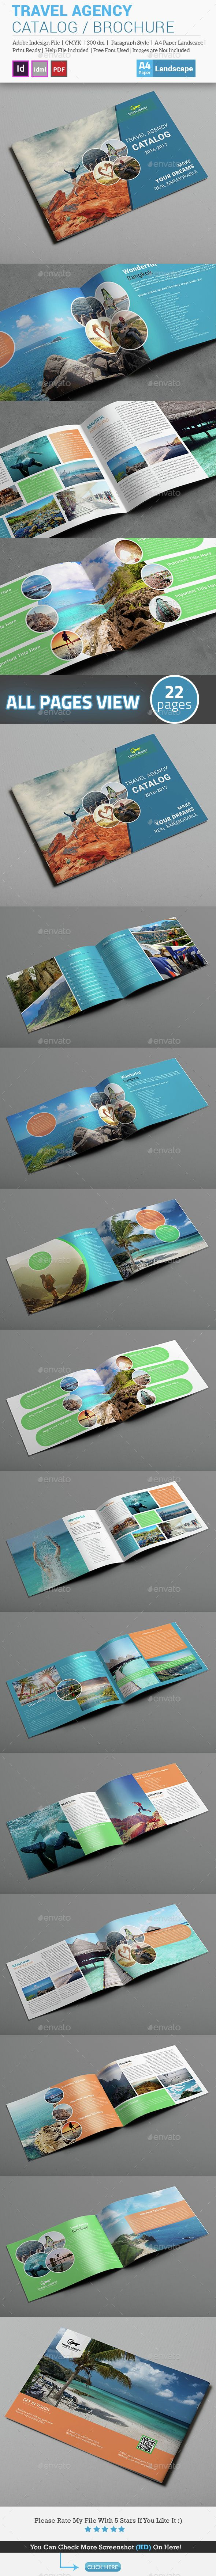 Travel Agency Brochure / Catalog Template | Diseño editorial ...